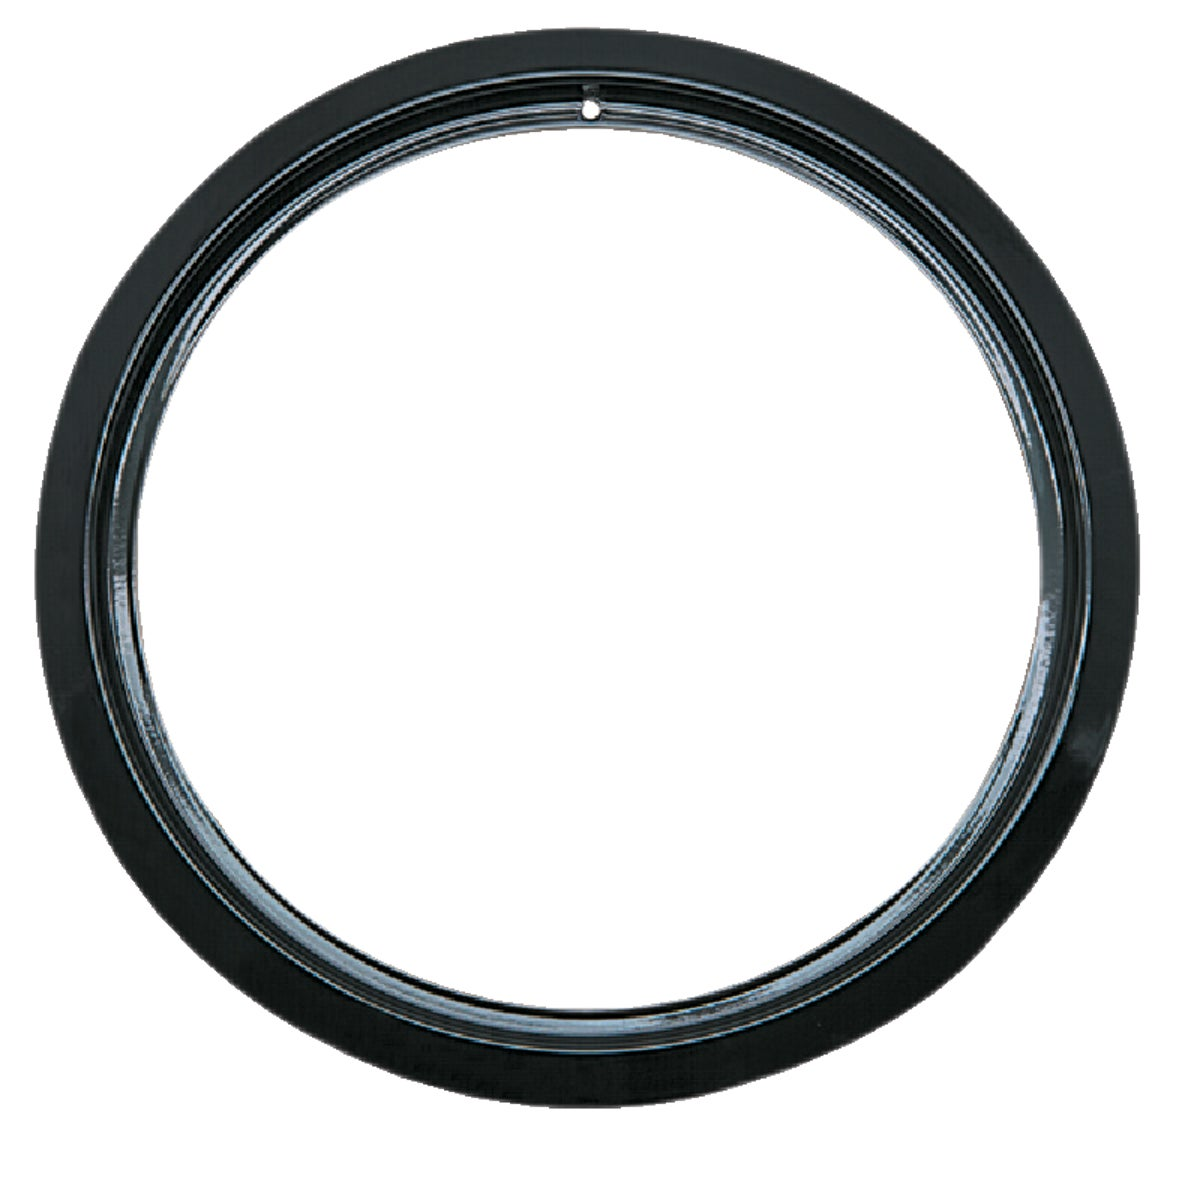 "8"" N/S TRIM RING - P-R8-GE by Range Kleen Mfg Inc"